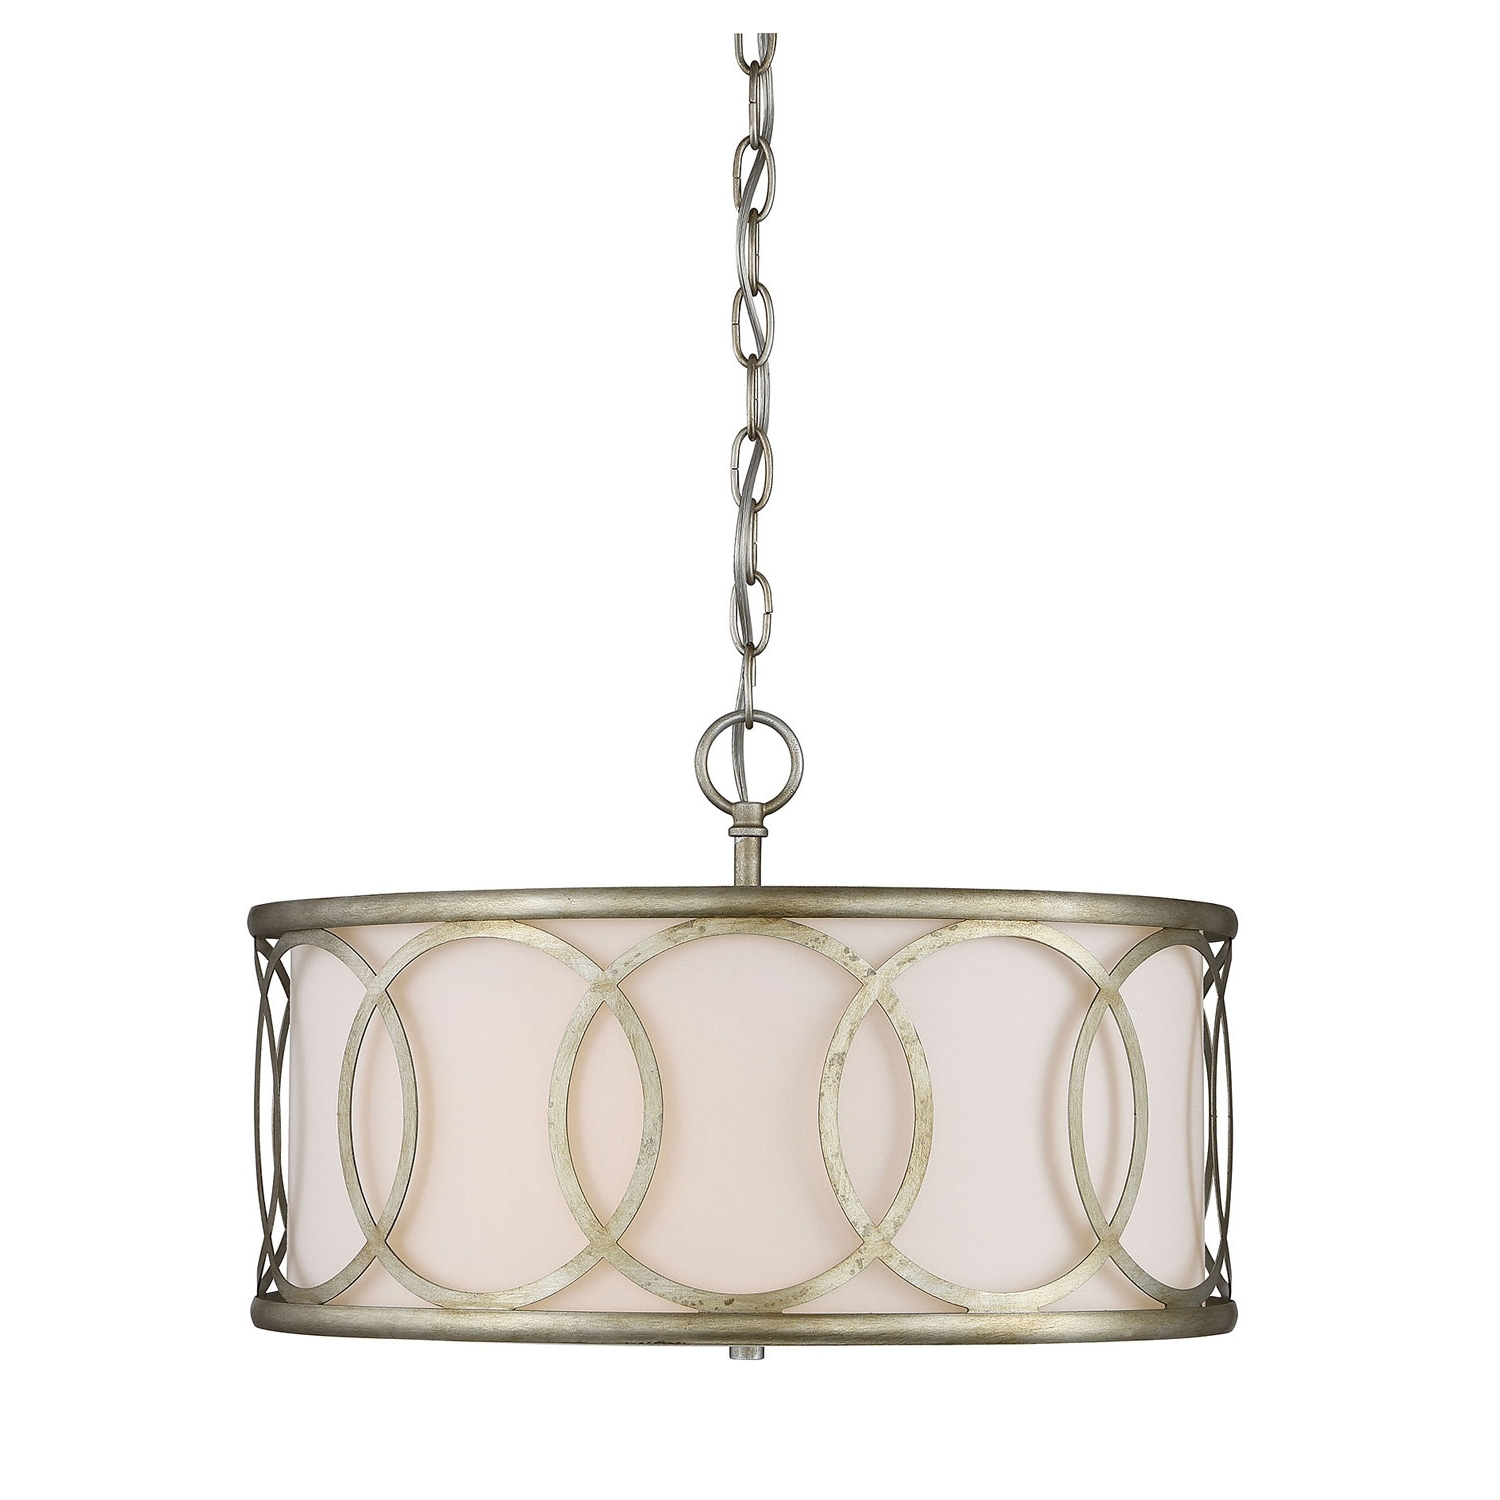 Well Liked Metal Drum Chandeliers With Regard To 251 First Linden Argentum Three Light Drum Pendant On Sale (View 15 of 15)